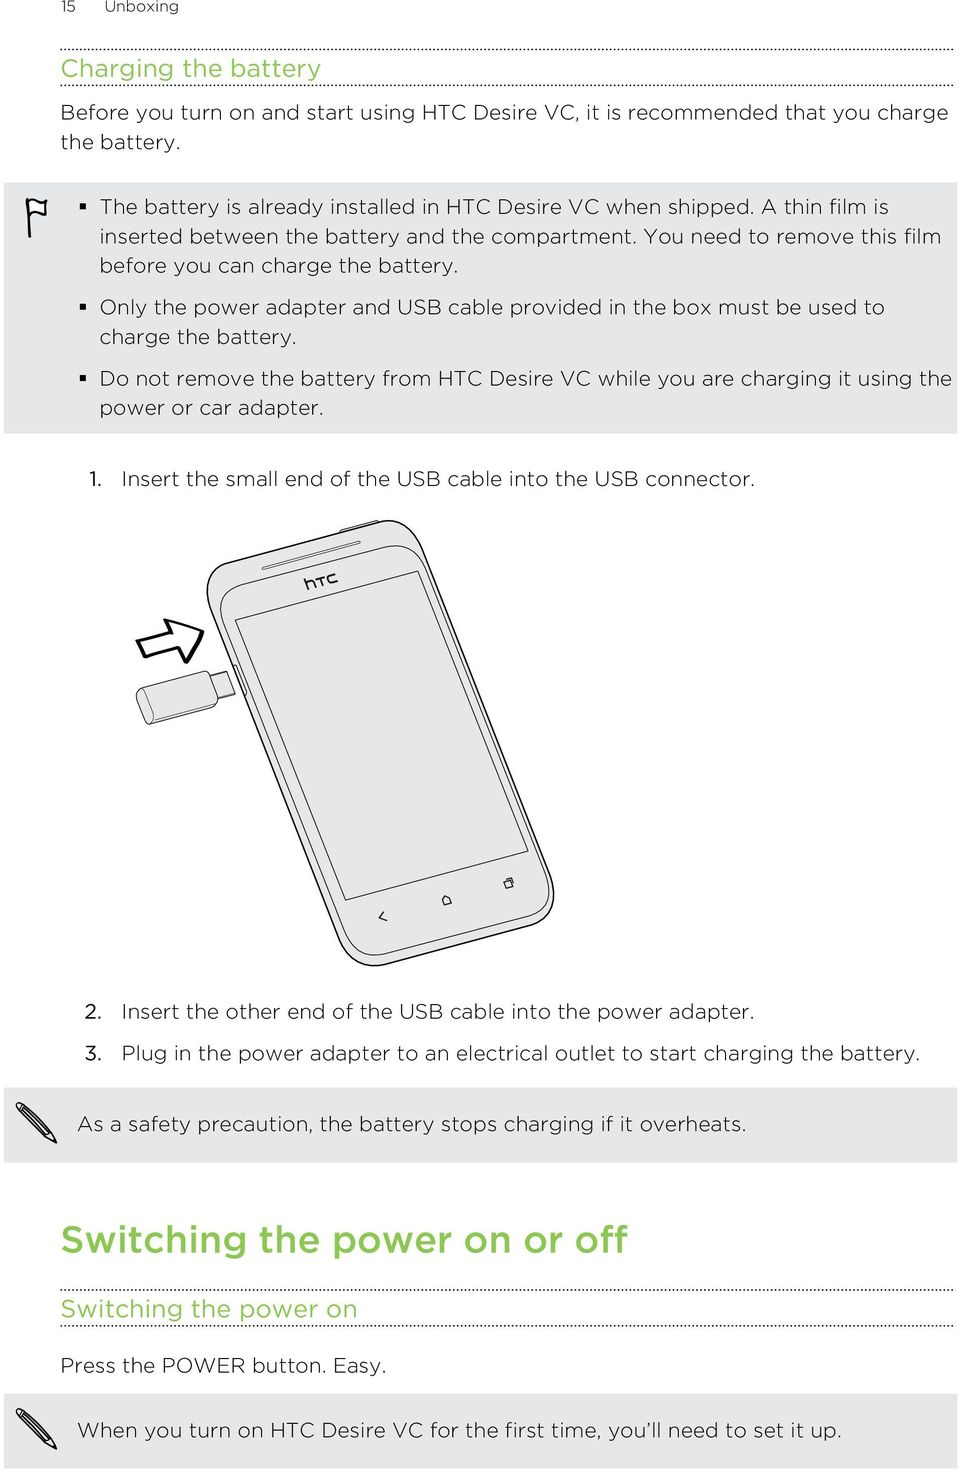 Only the power adapter and USB cable provided in the box must be used to charge the battery. Do not remove the battery from HTC Desire VC while you are charging it using the power or car adapter. 1.